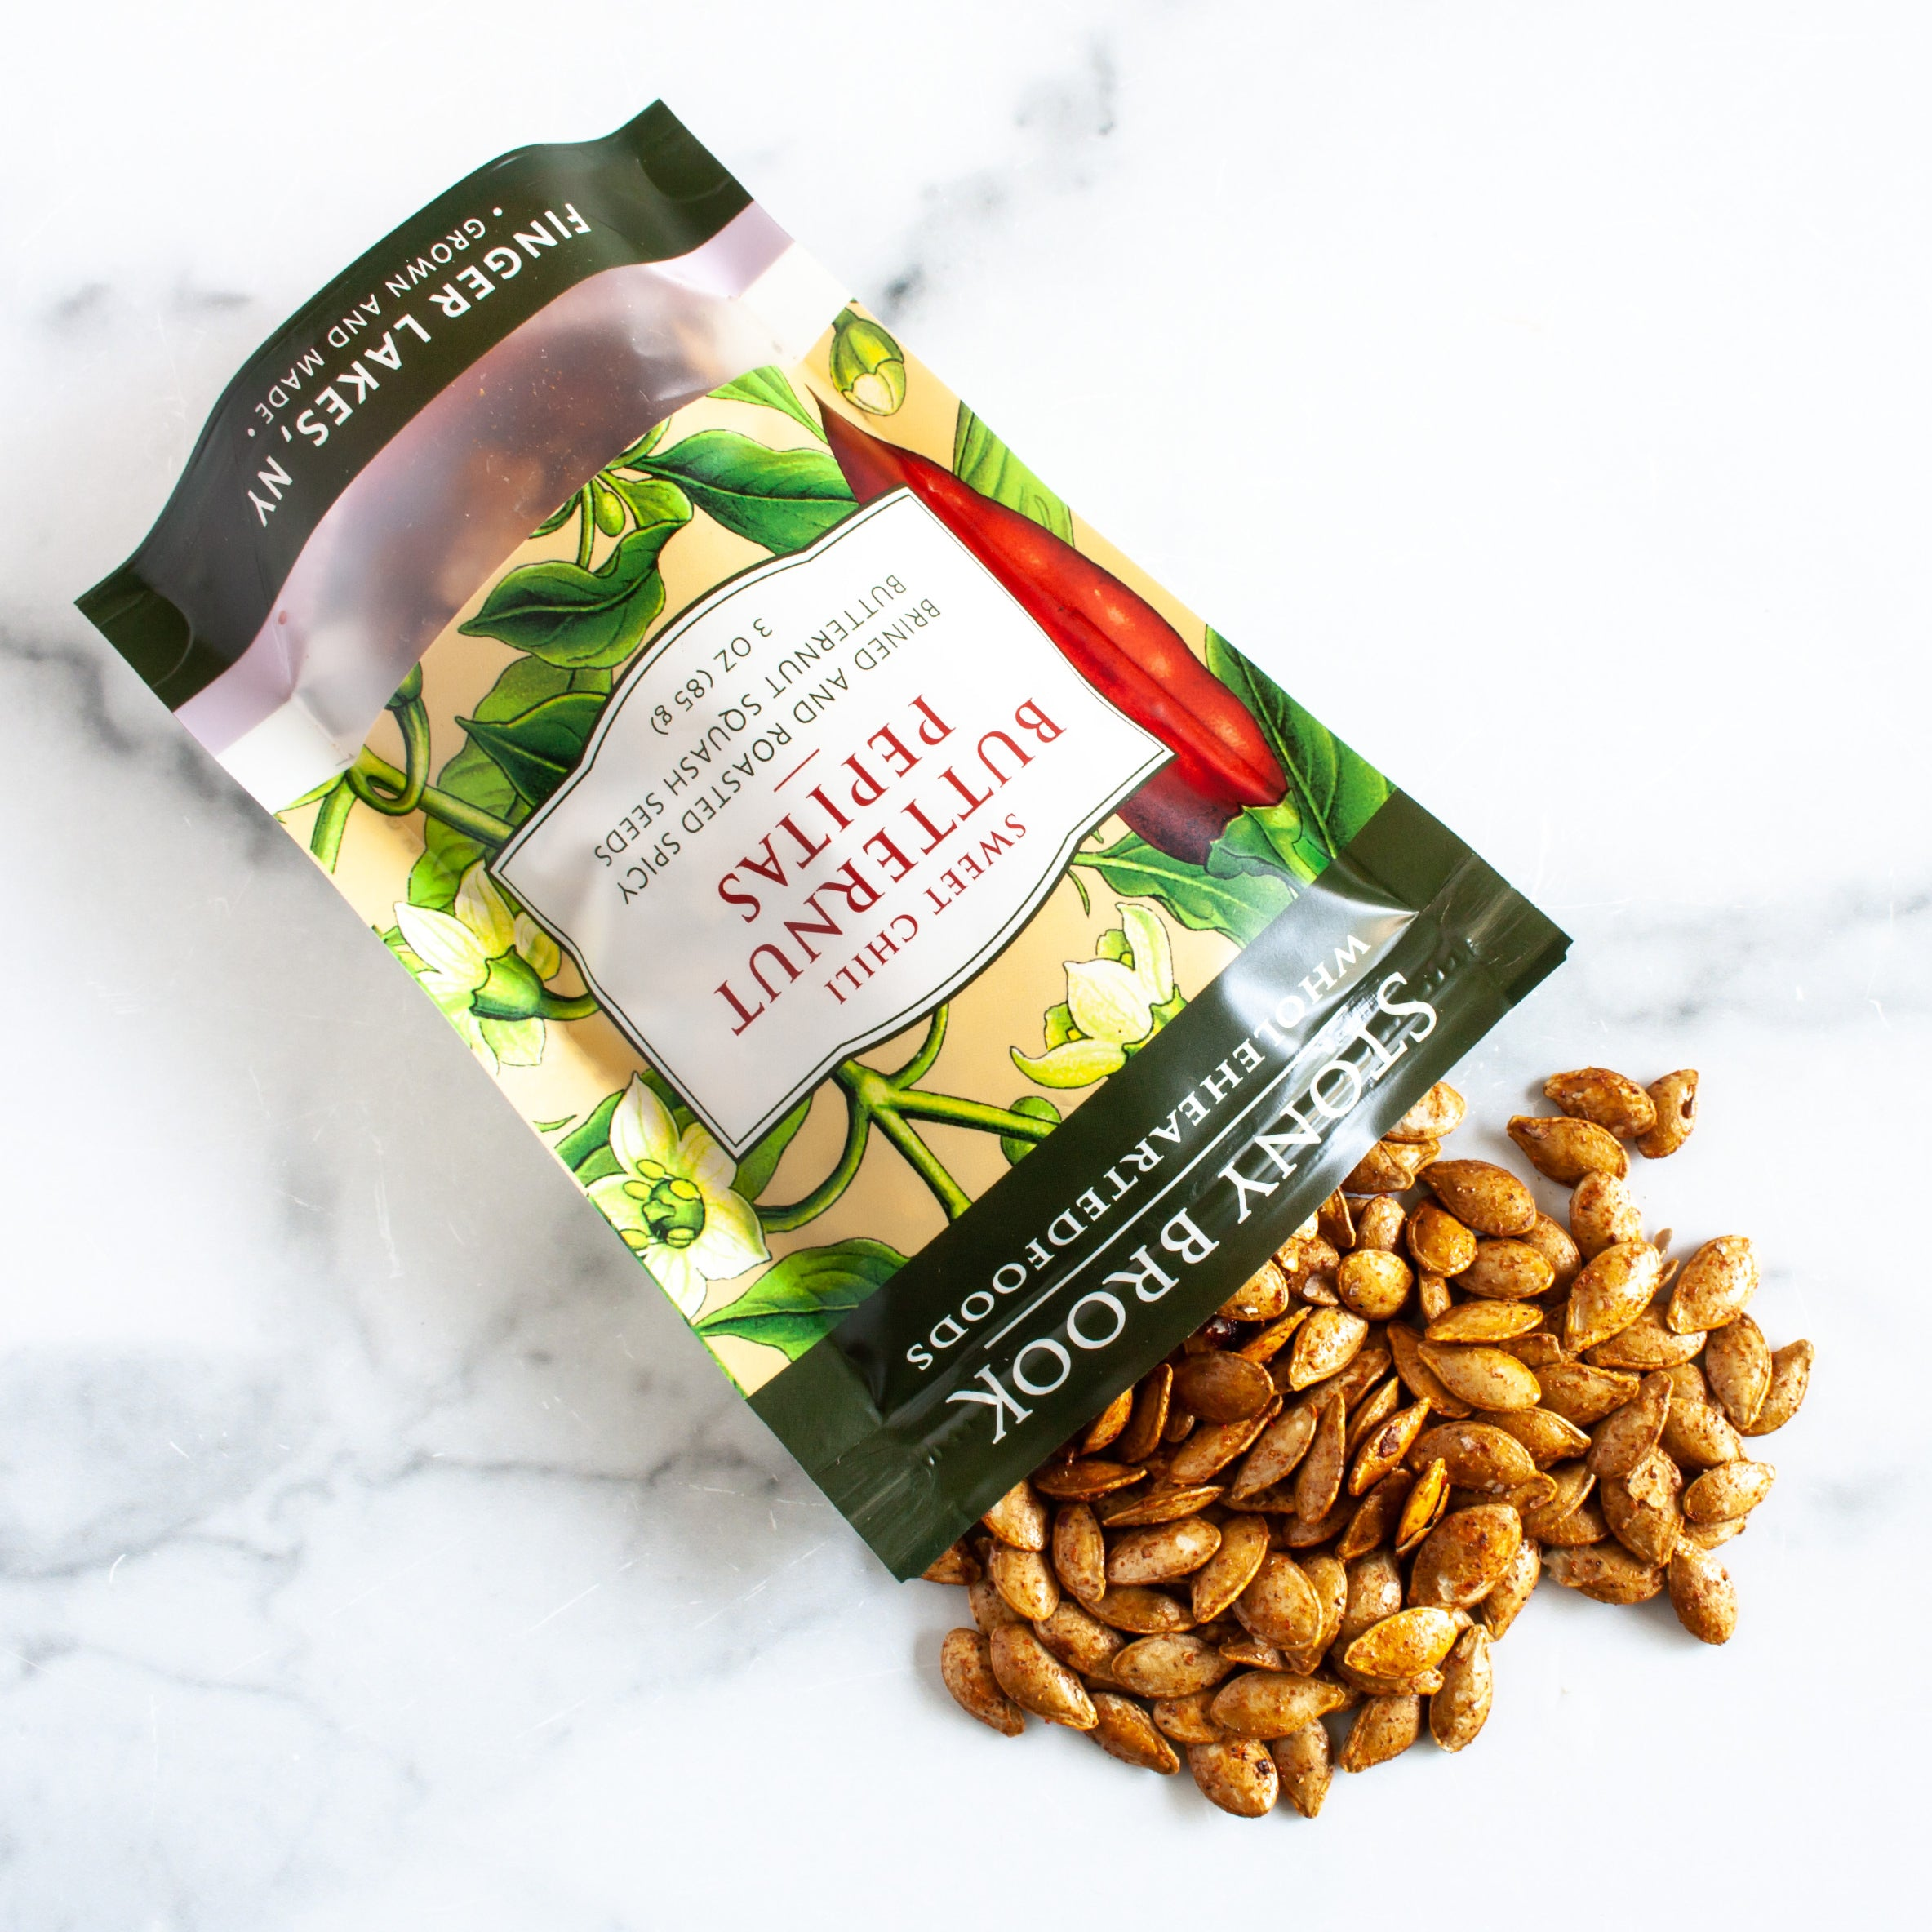 Sweet Chili Roasted Butternut Squash Seeds